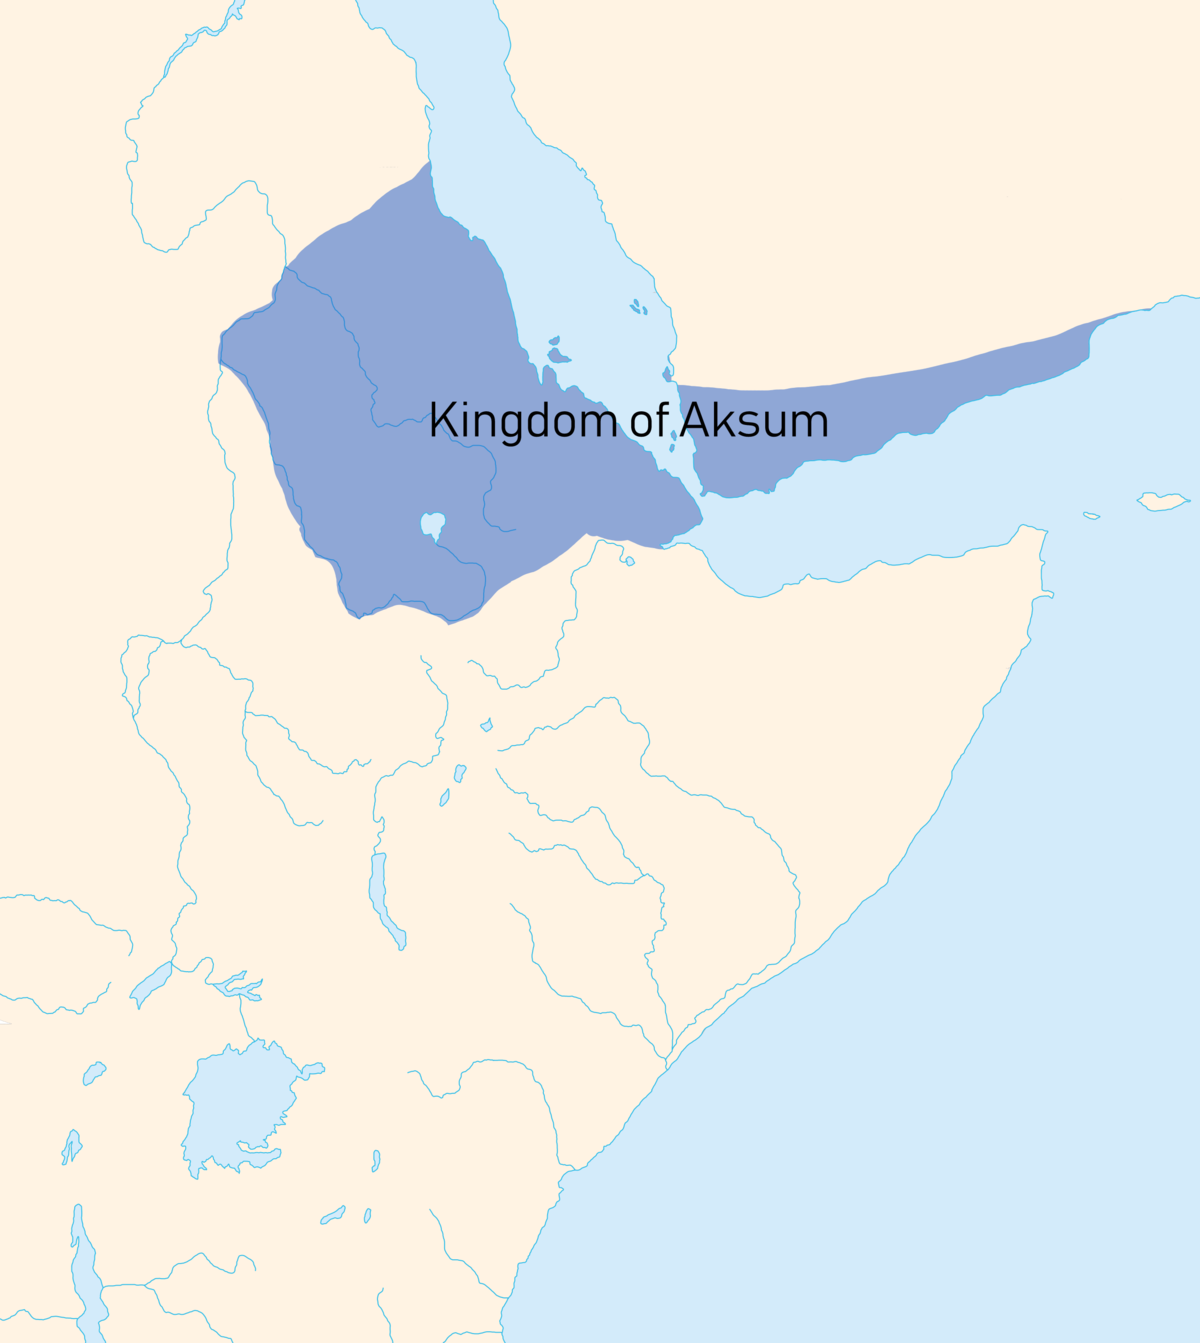 Kingdom of Aksum - Wikipedia on aksum on map, simien map, ptolemaic kingdom map, caspian sea map, frank's map, constantinople map, kingdom of ethiopia, kingdom of franks under charlemagne, ethiopian empire map, kingdom zimbabwe buildings, ethiopia map, mansa musa map, frankish kingdom map, ayutthaya kingdom map, great rift valley africa map, axumite empire map, kingdom of kush, kingdom of zimbabwe,